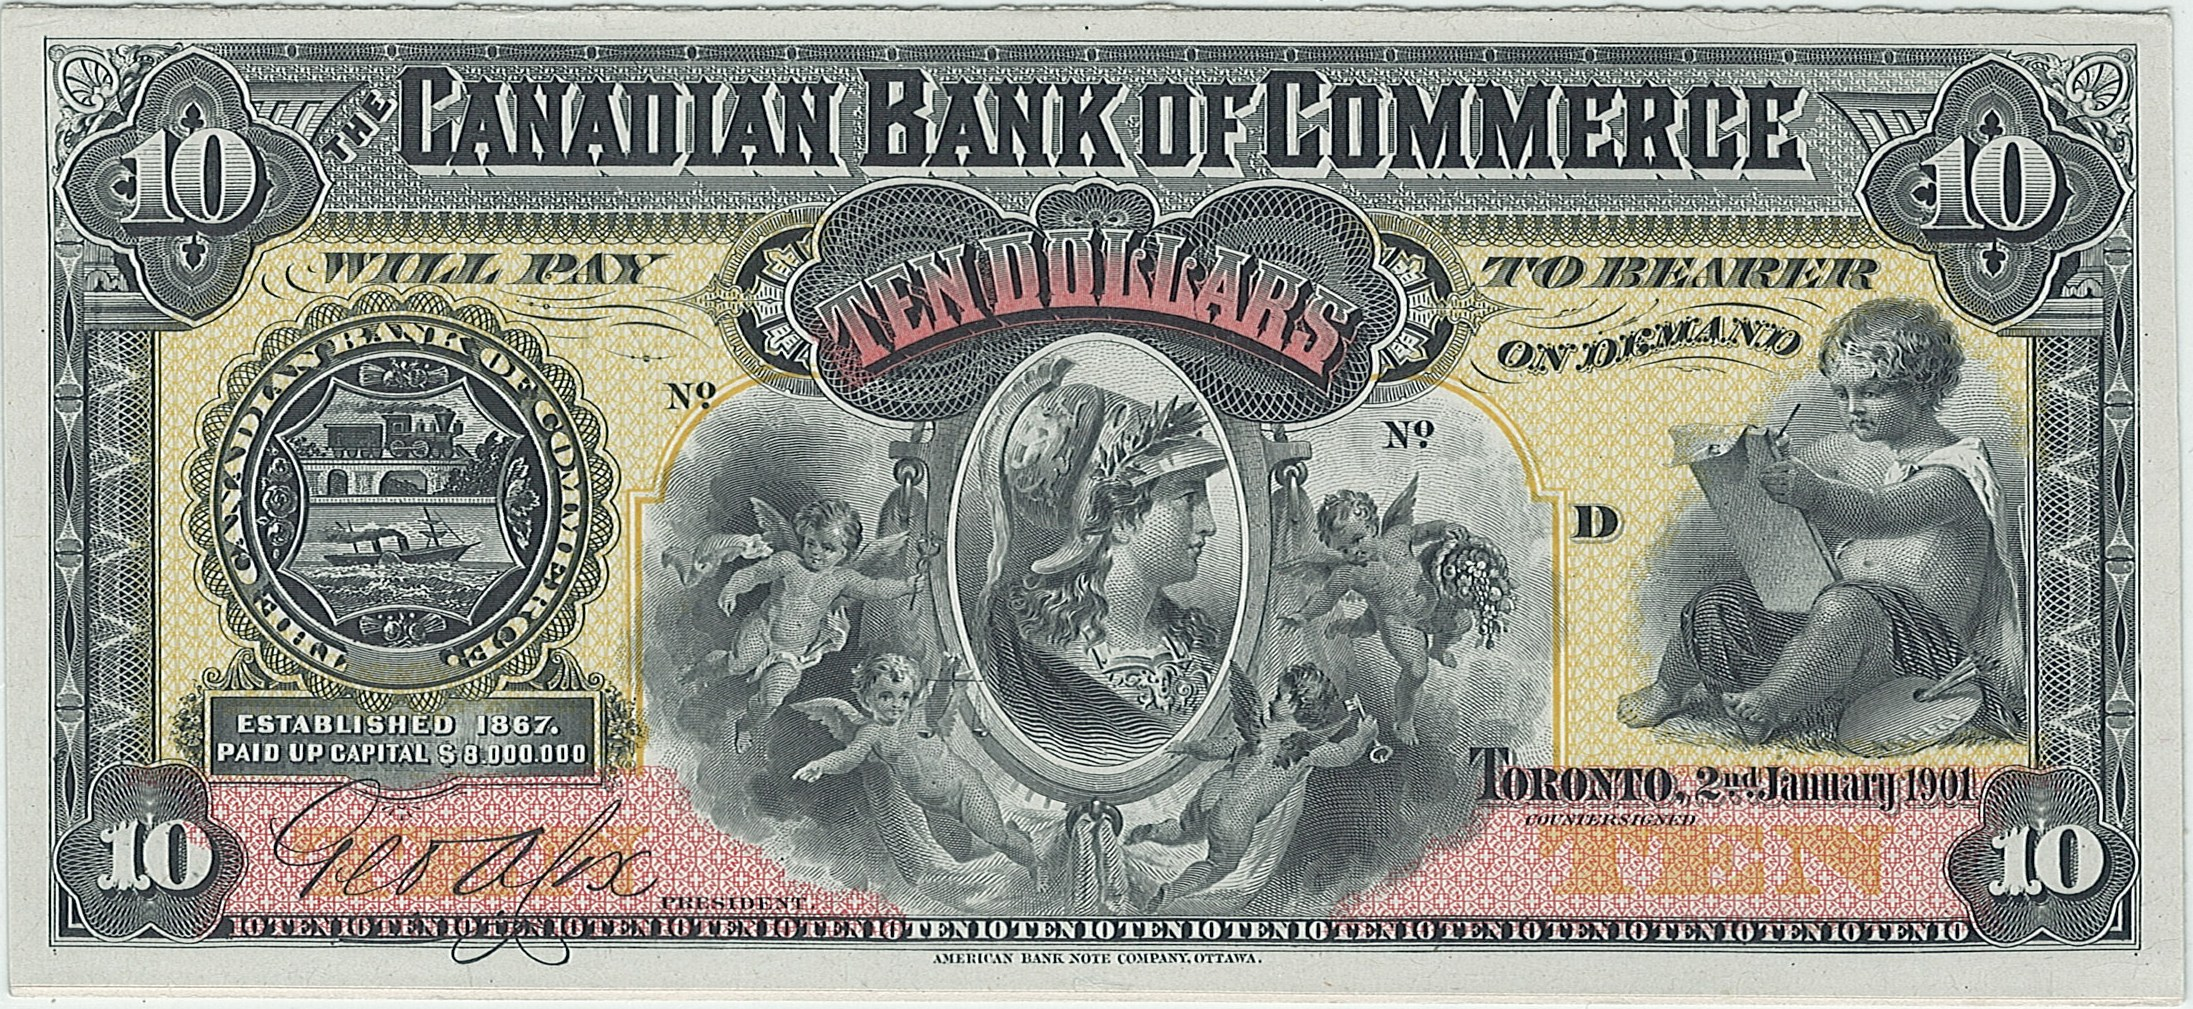 Canadian Bank of Commerce, 10$, Канада, 1901 г.